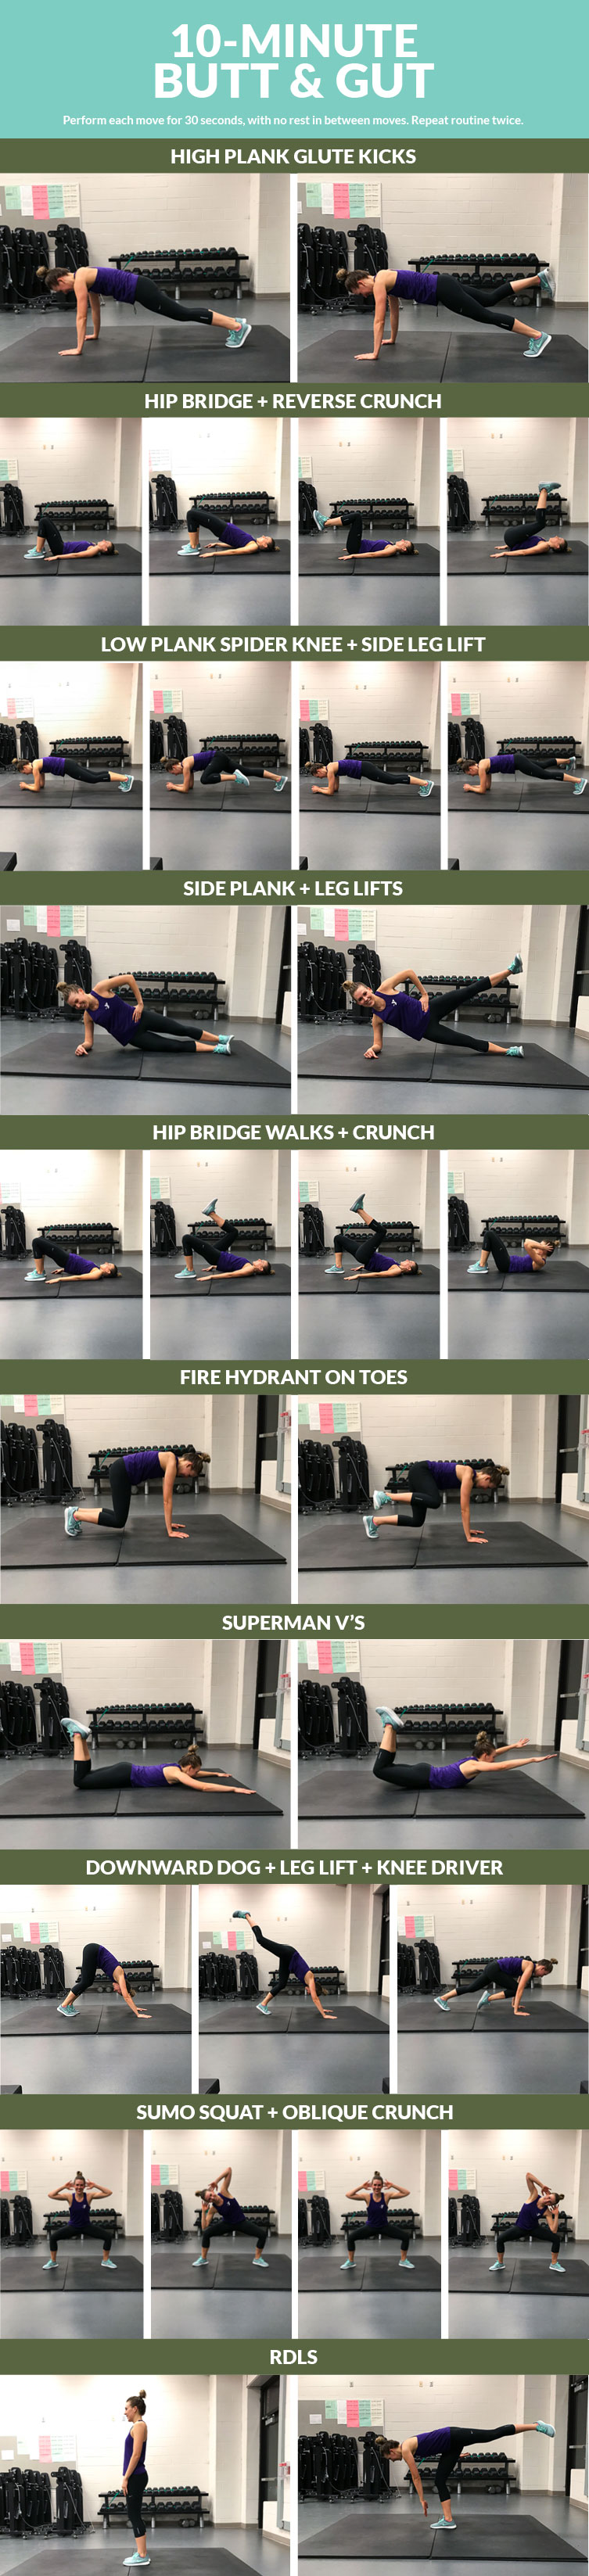 10-Minute Butt-and-Gut Workout